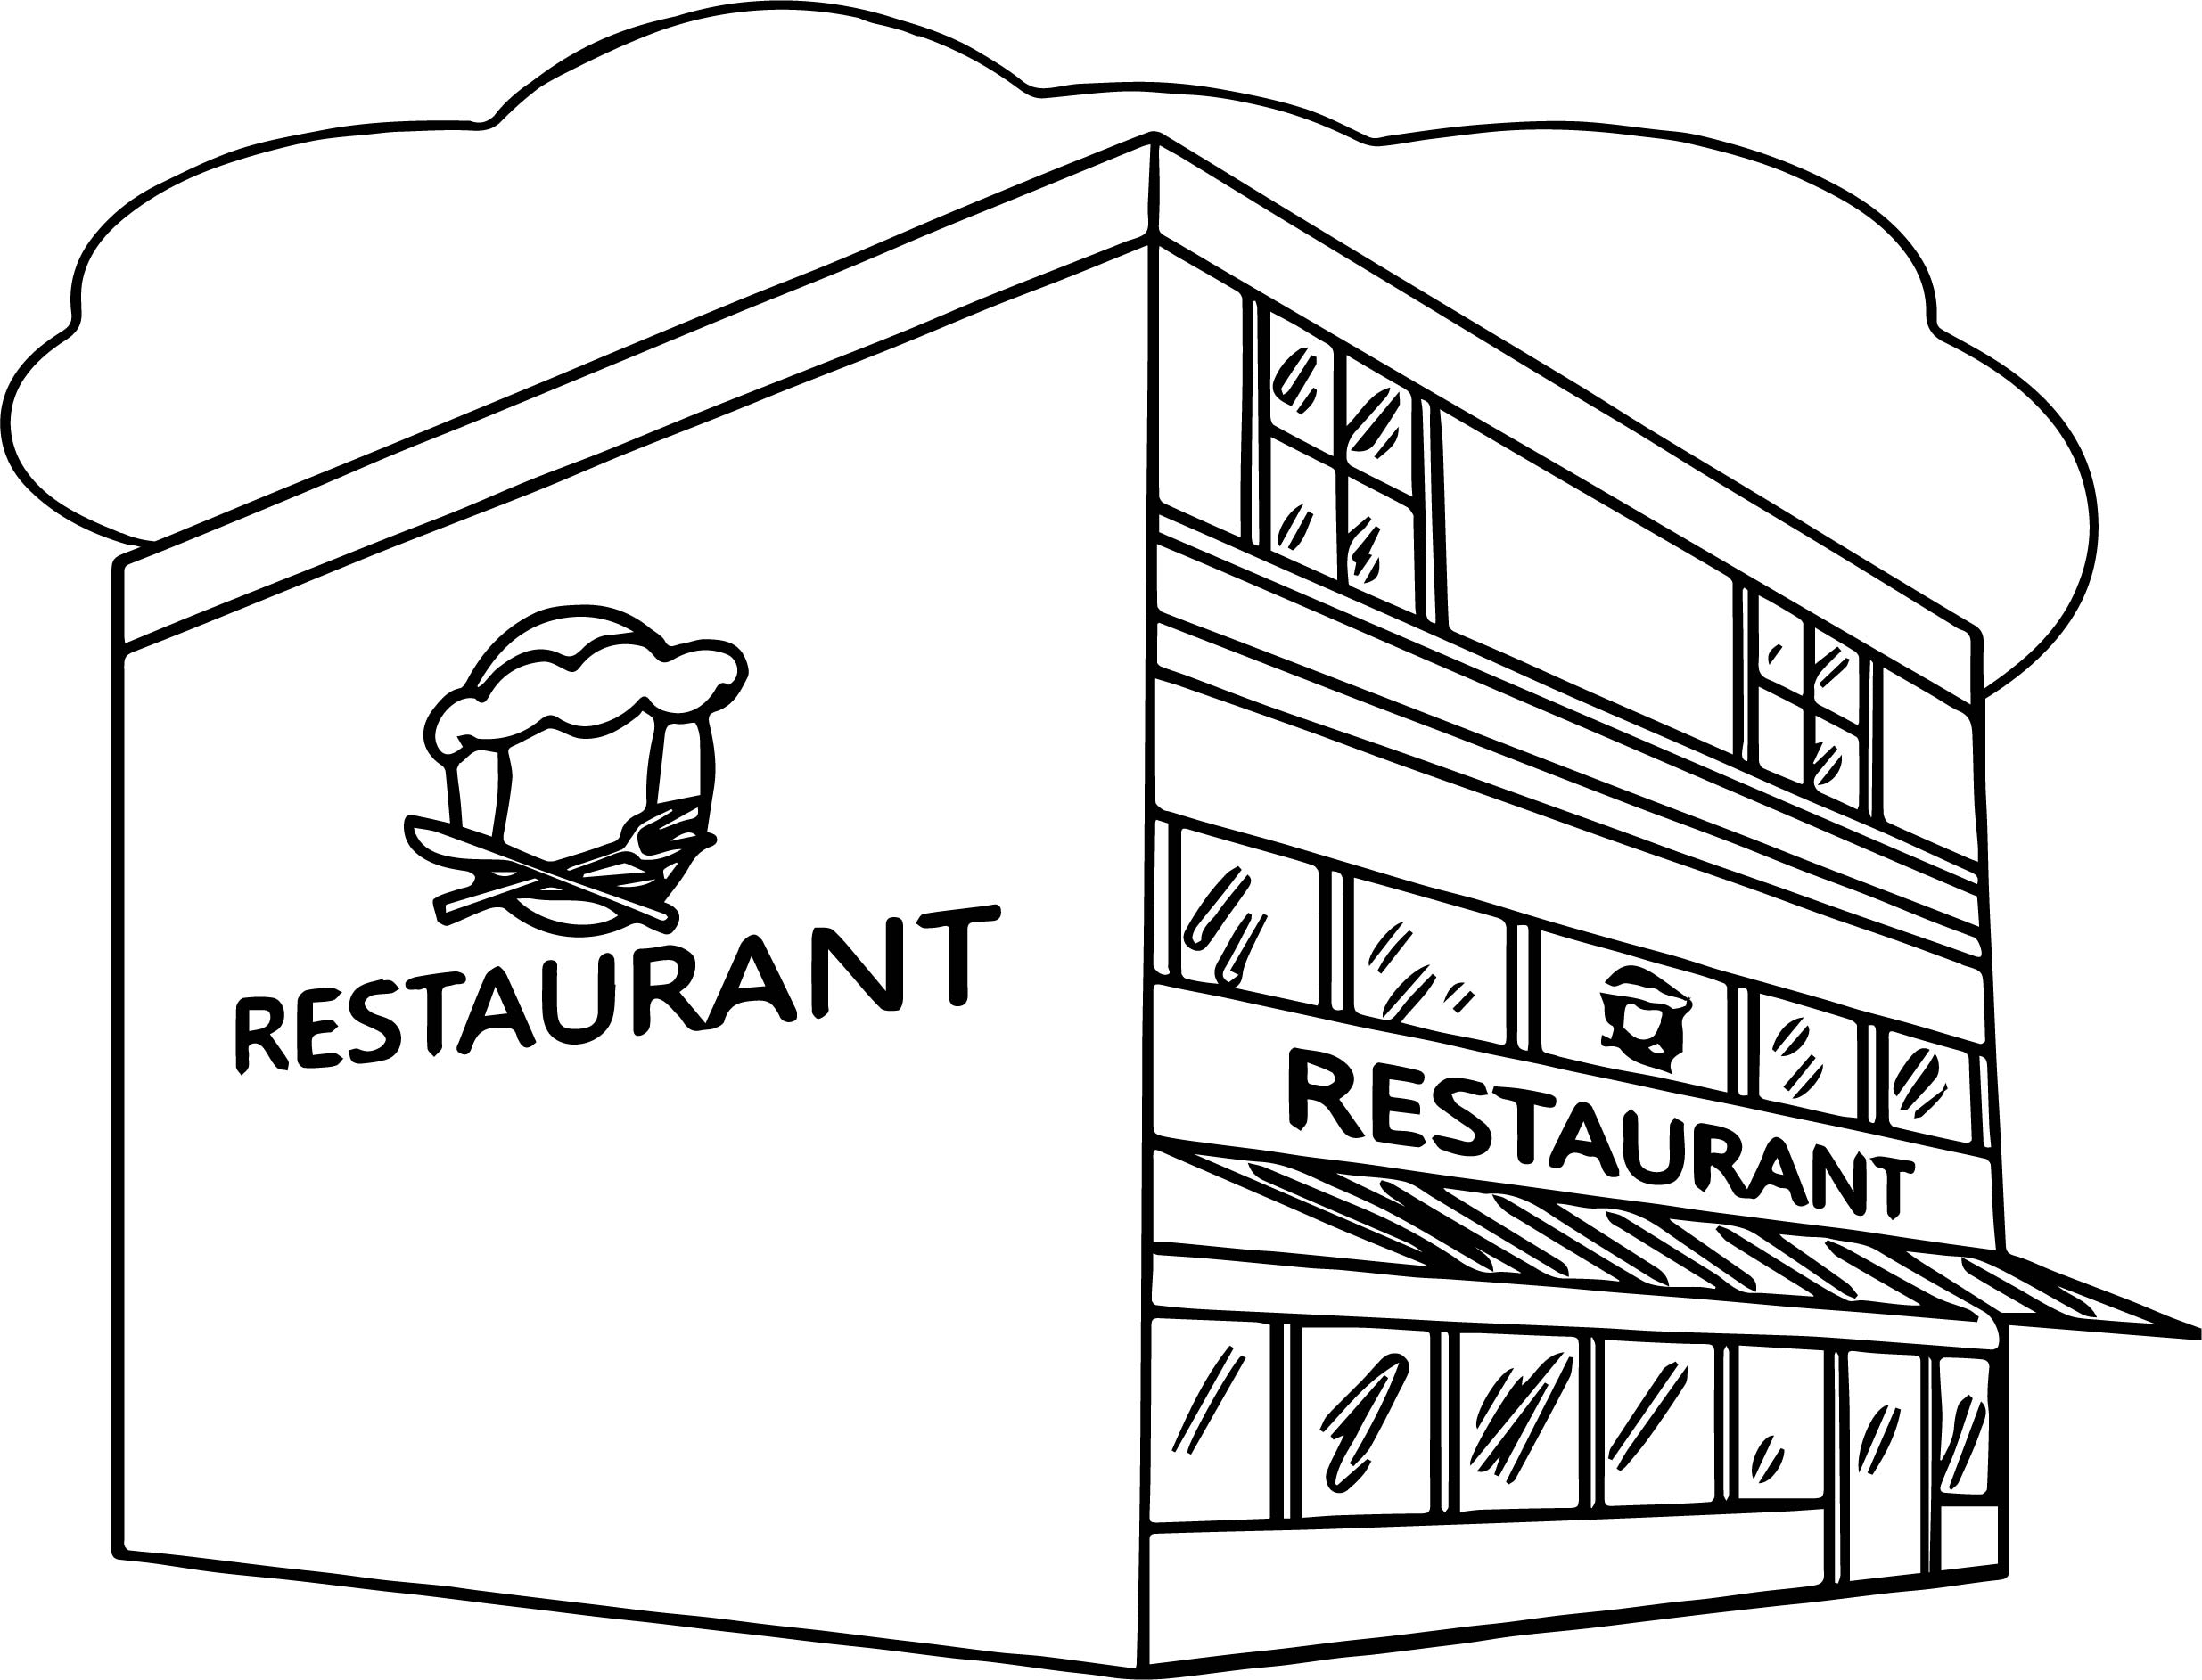 Restaurant Building Great Restaurant Coloring Page Wecoloringpage Printable Of Coloring Pages for Restaurants to Print Collection